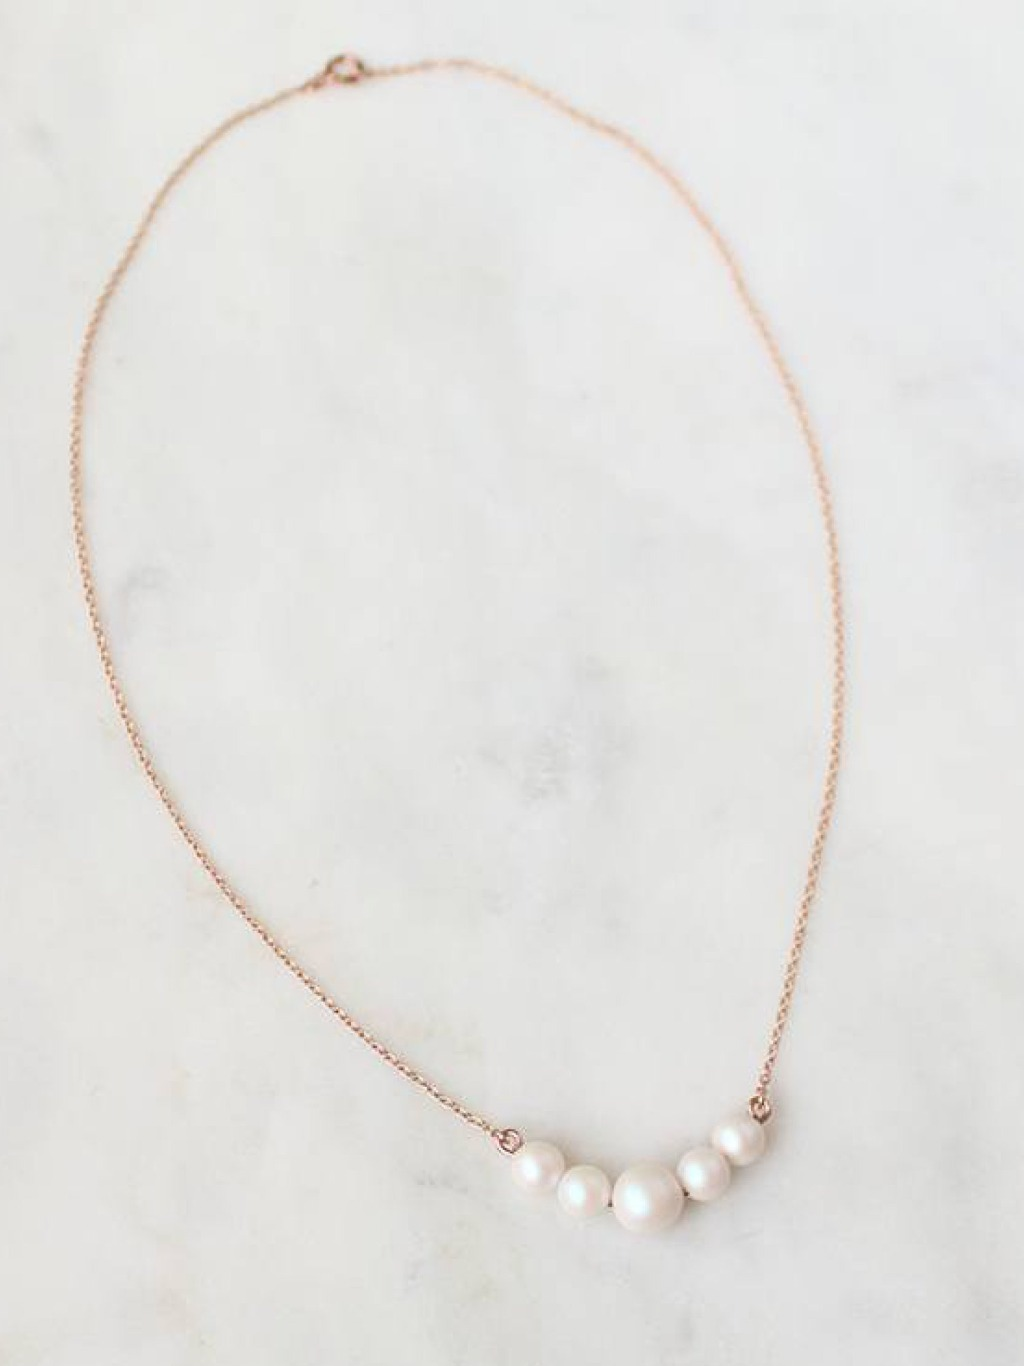 A simple necklace for a pared down look.